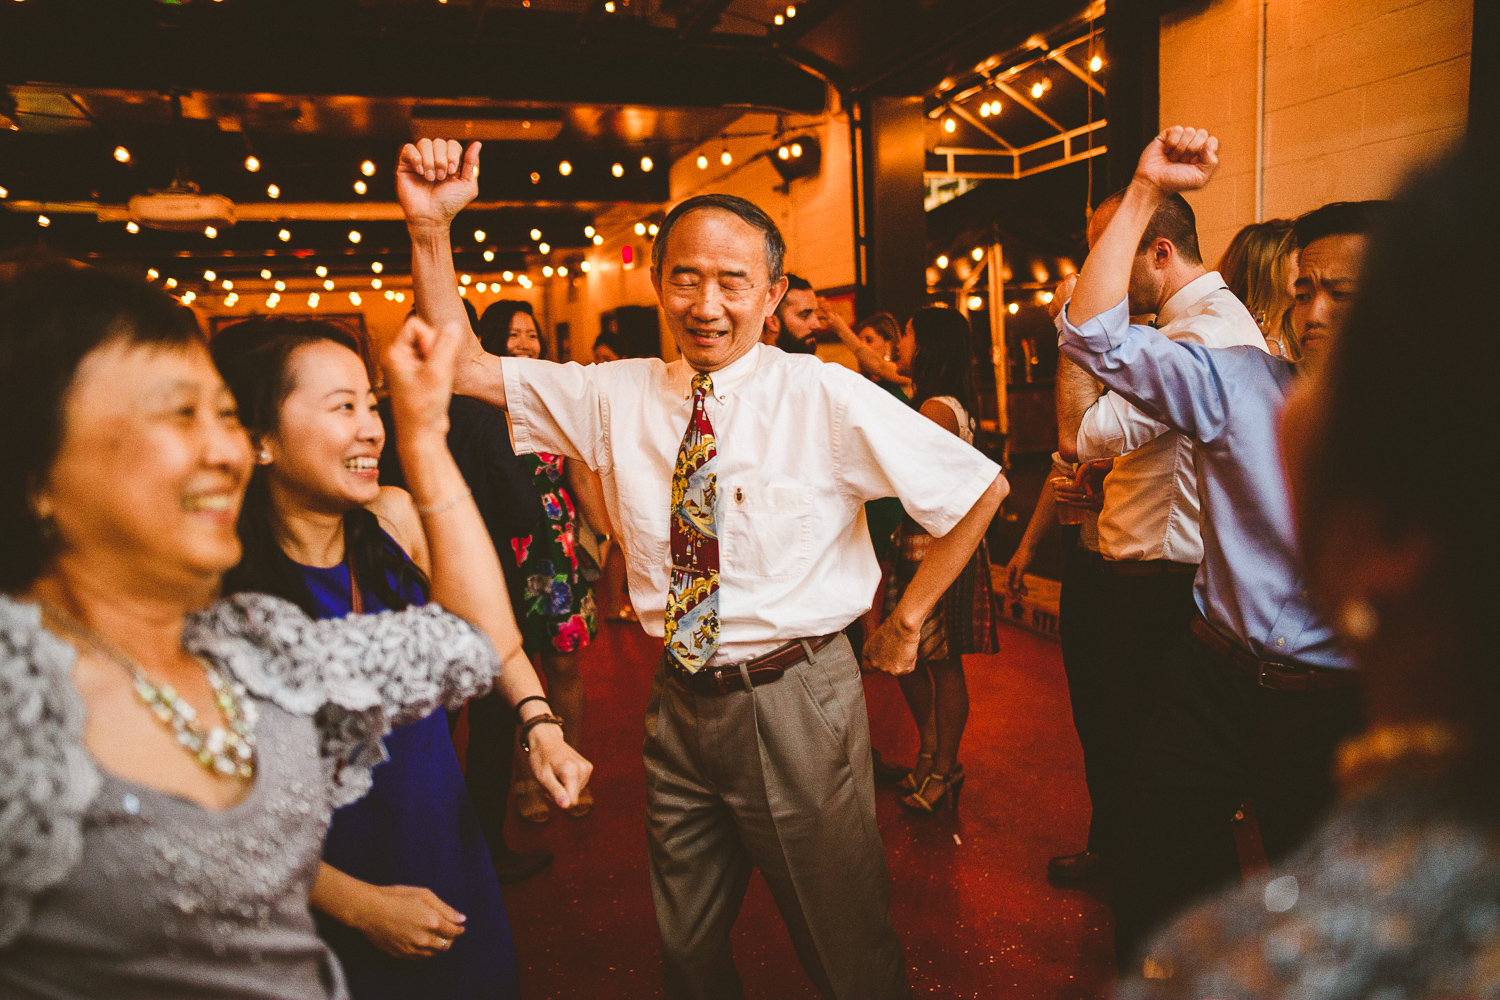 059 - dancing at wedding in virginia.jpg